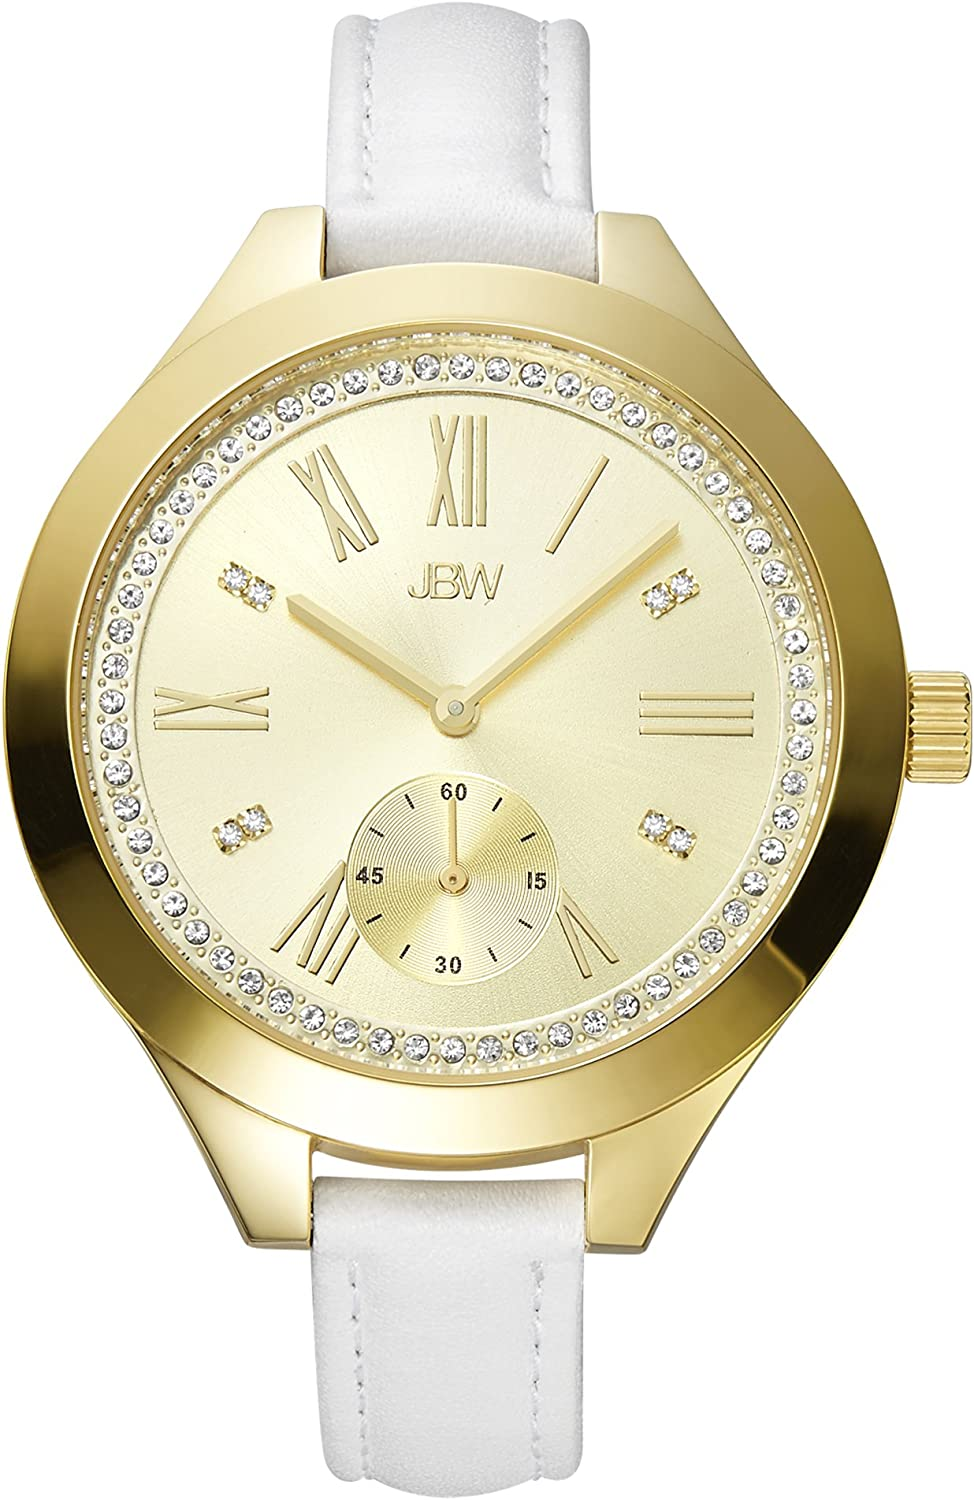 JBW Luxury Women s Aria Diamond Wrist Watch with Leather Bracelet